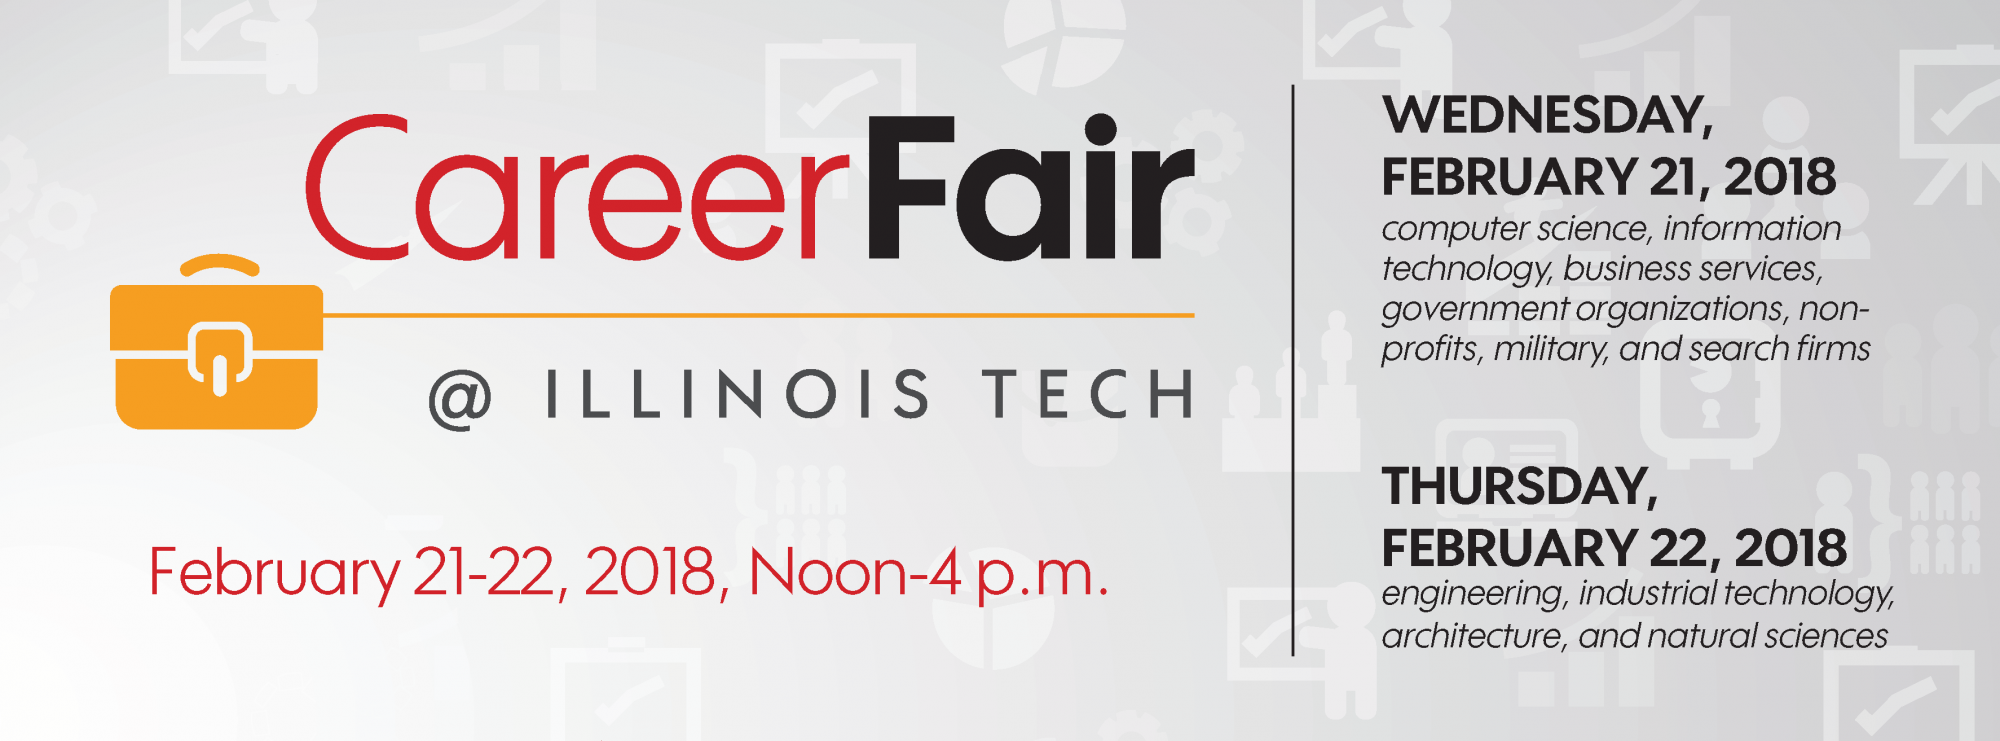 our campus wide career fairs are held each semester and are two days separated by general industry groupings to allow for more companies to attend and - Iit Resume Computer Science